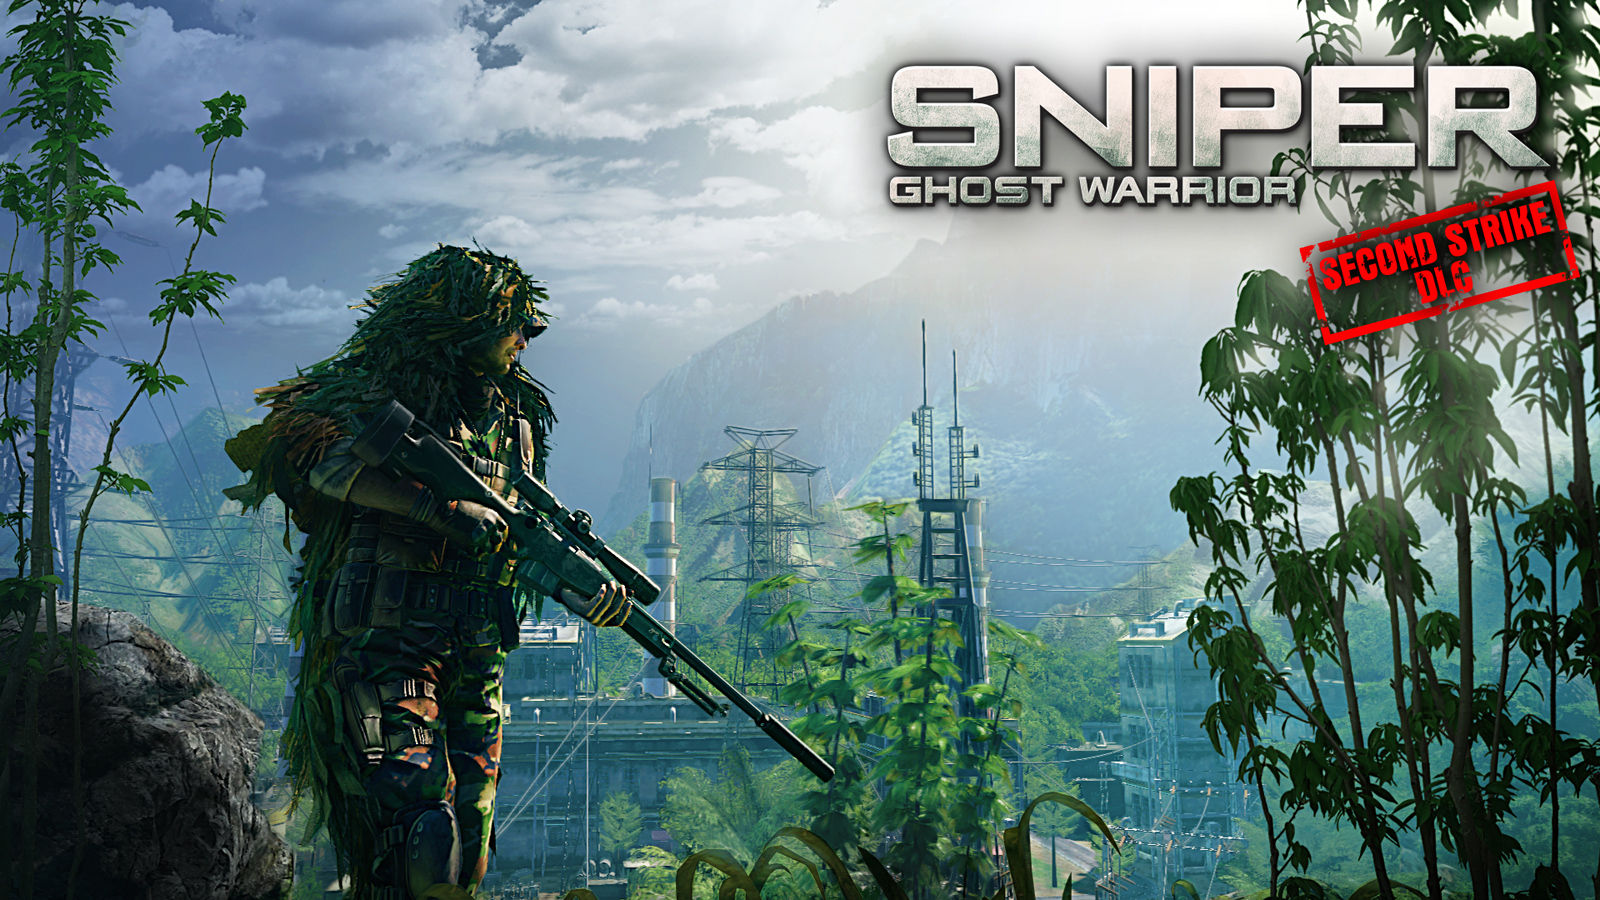 Free Download Games Sniper For Pc Windows 8 Hitman Fuse Box How To And Install Ghost Warrior 1 Full